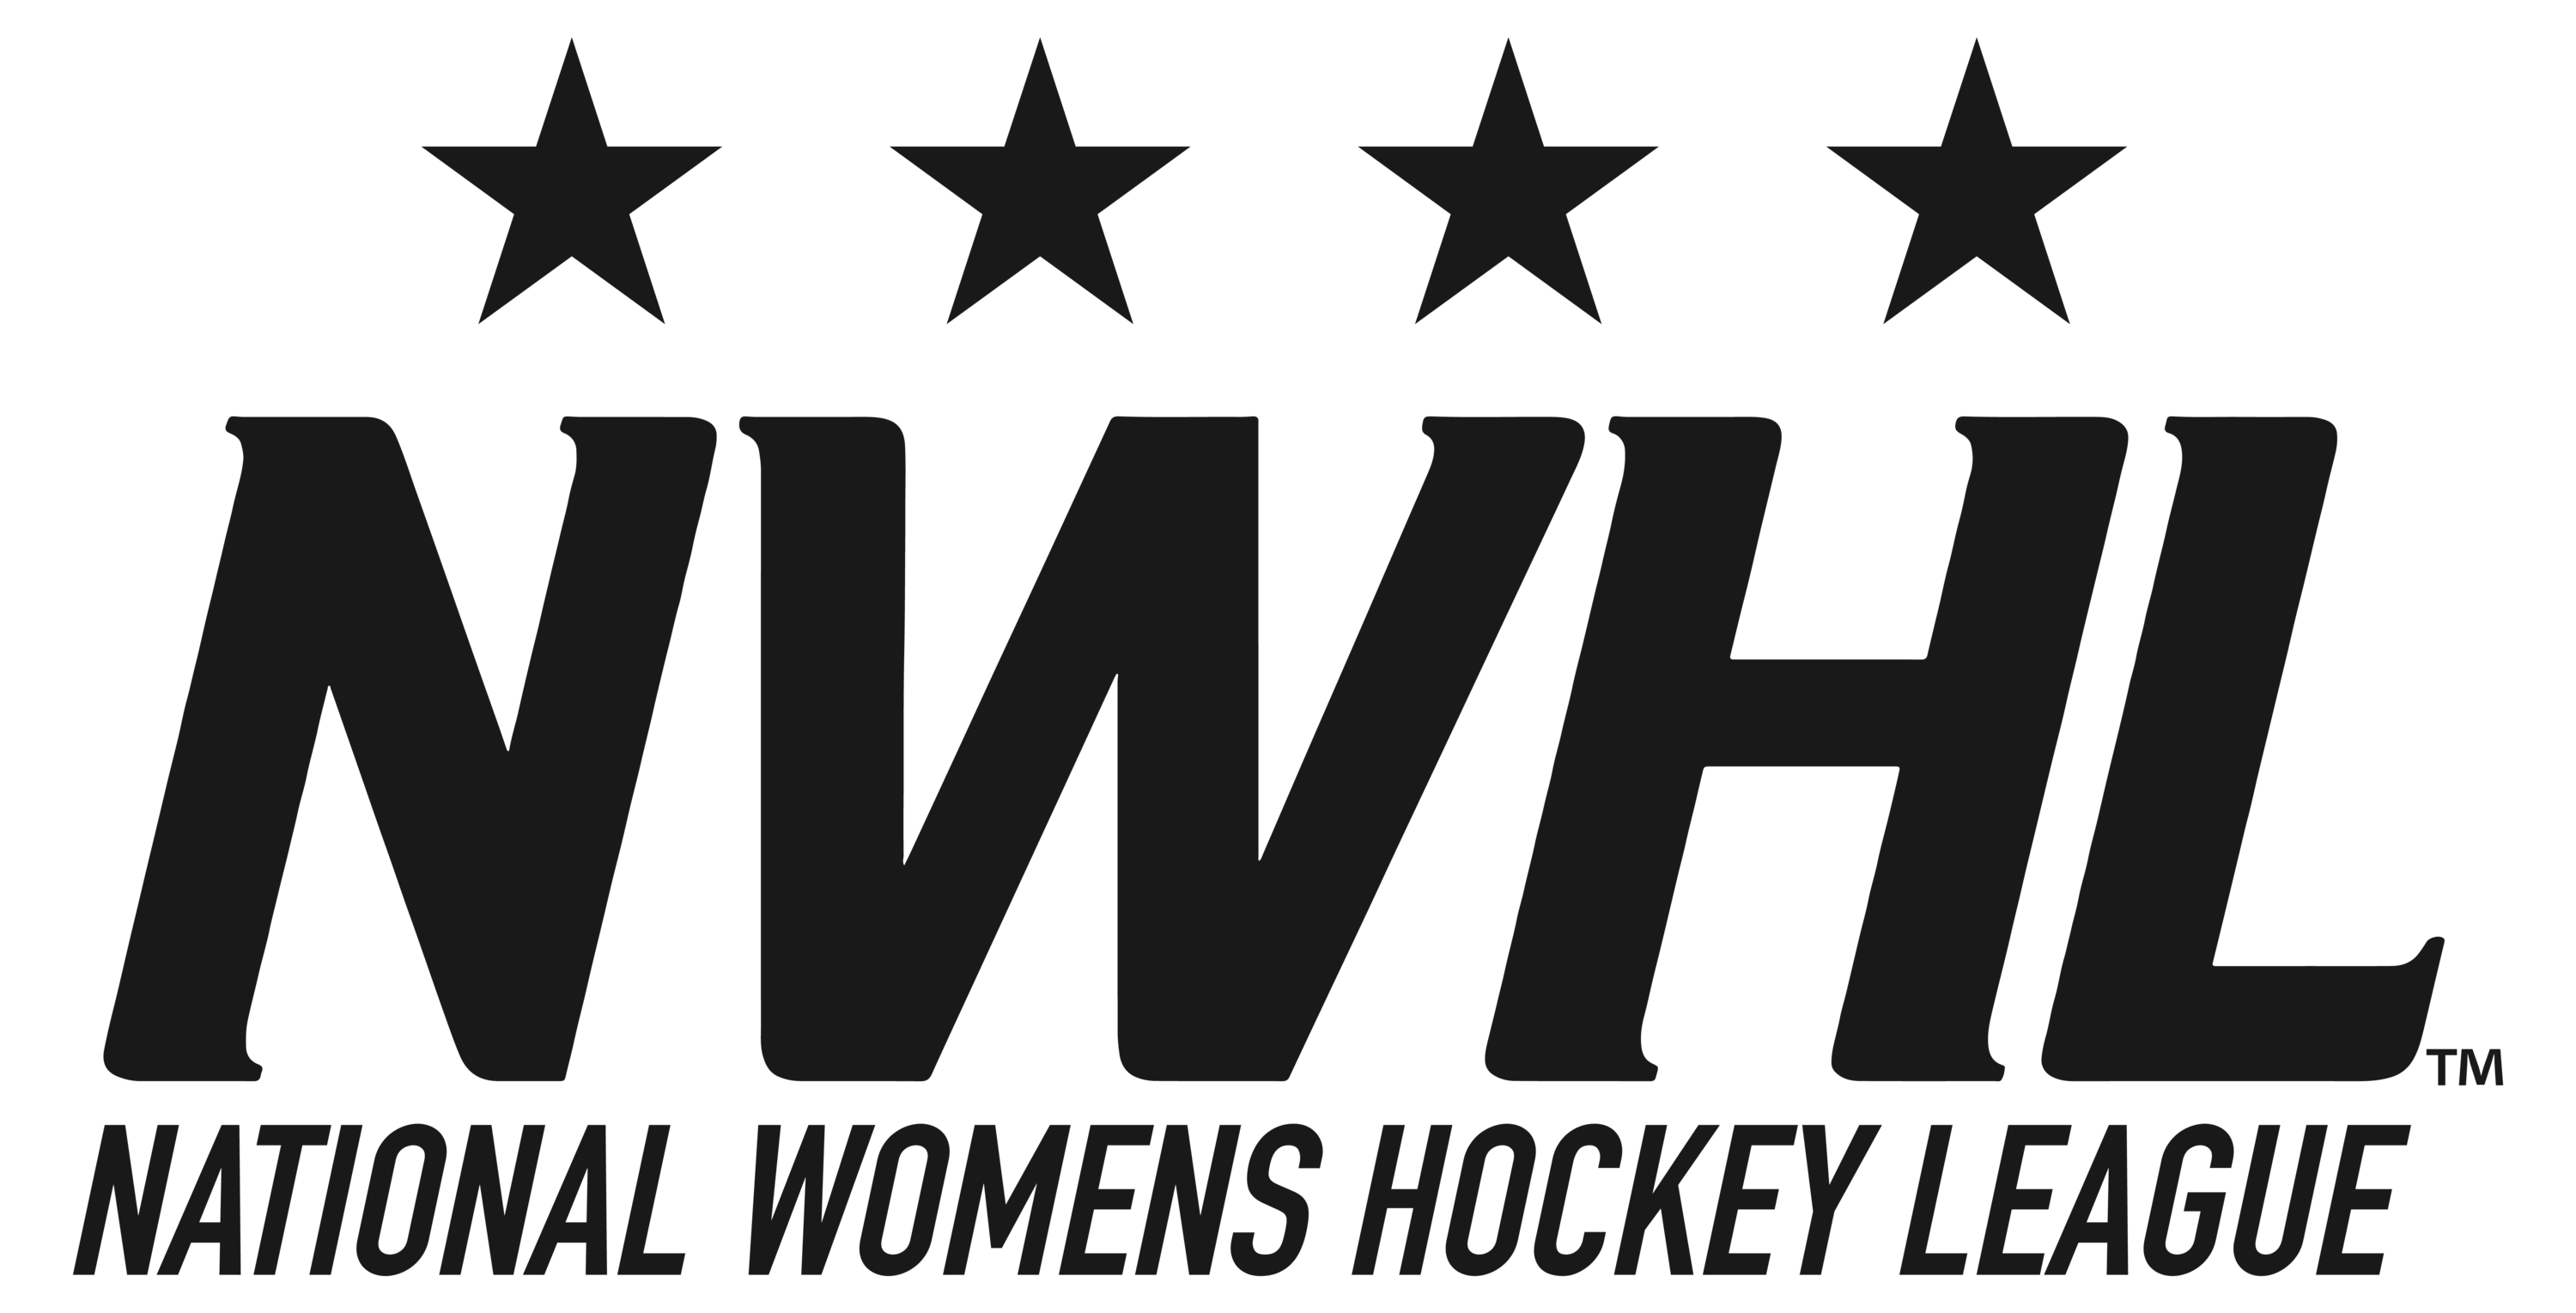 NWHL Enacts Player Salary Cuts To Keep League Viable